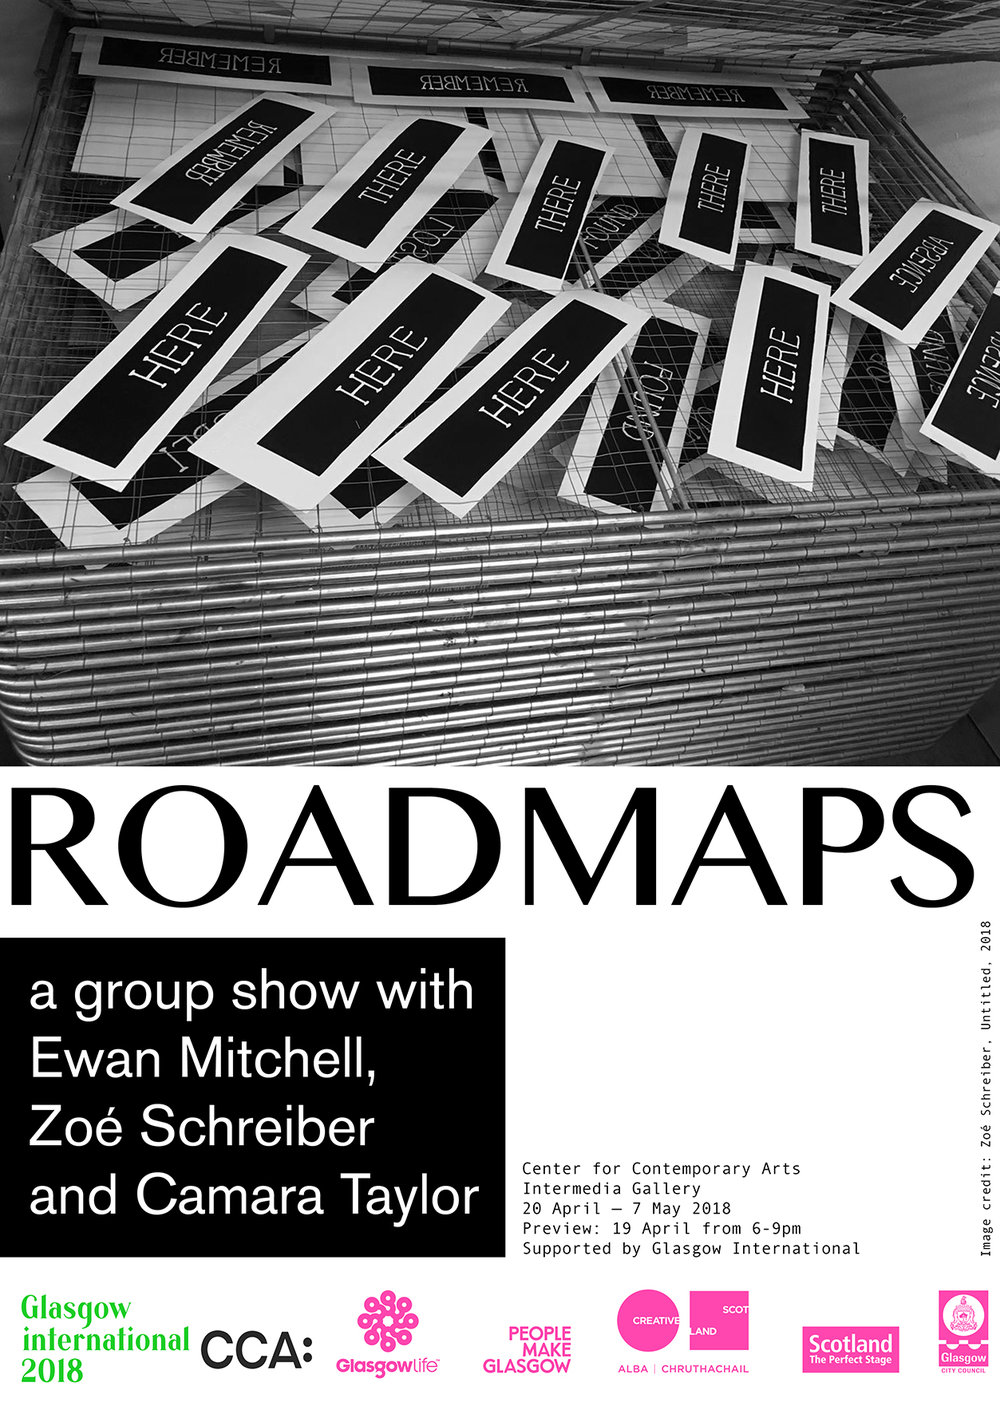 Poster_GI_ROADMAPS_bangla MN Regular_preview_6-9pm_lowres.jpg